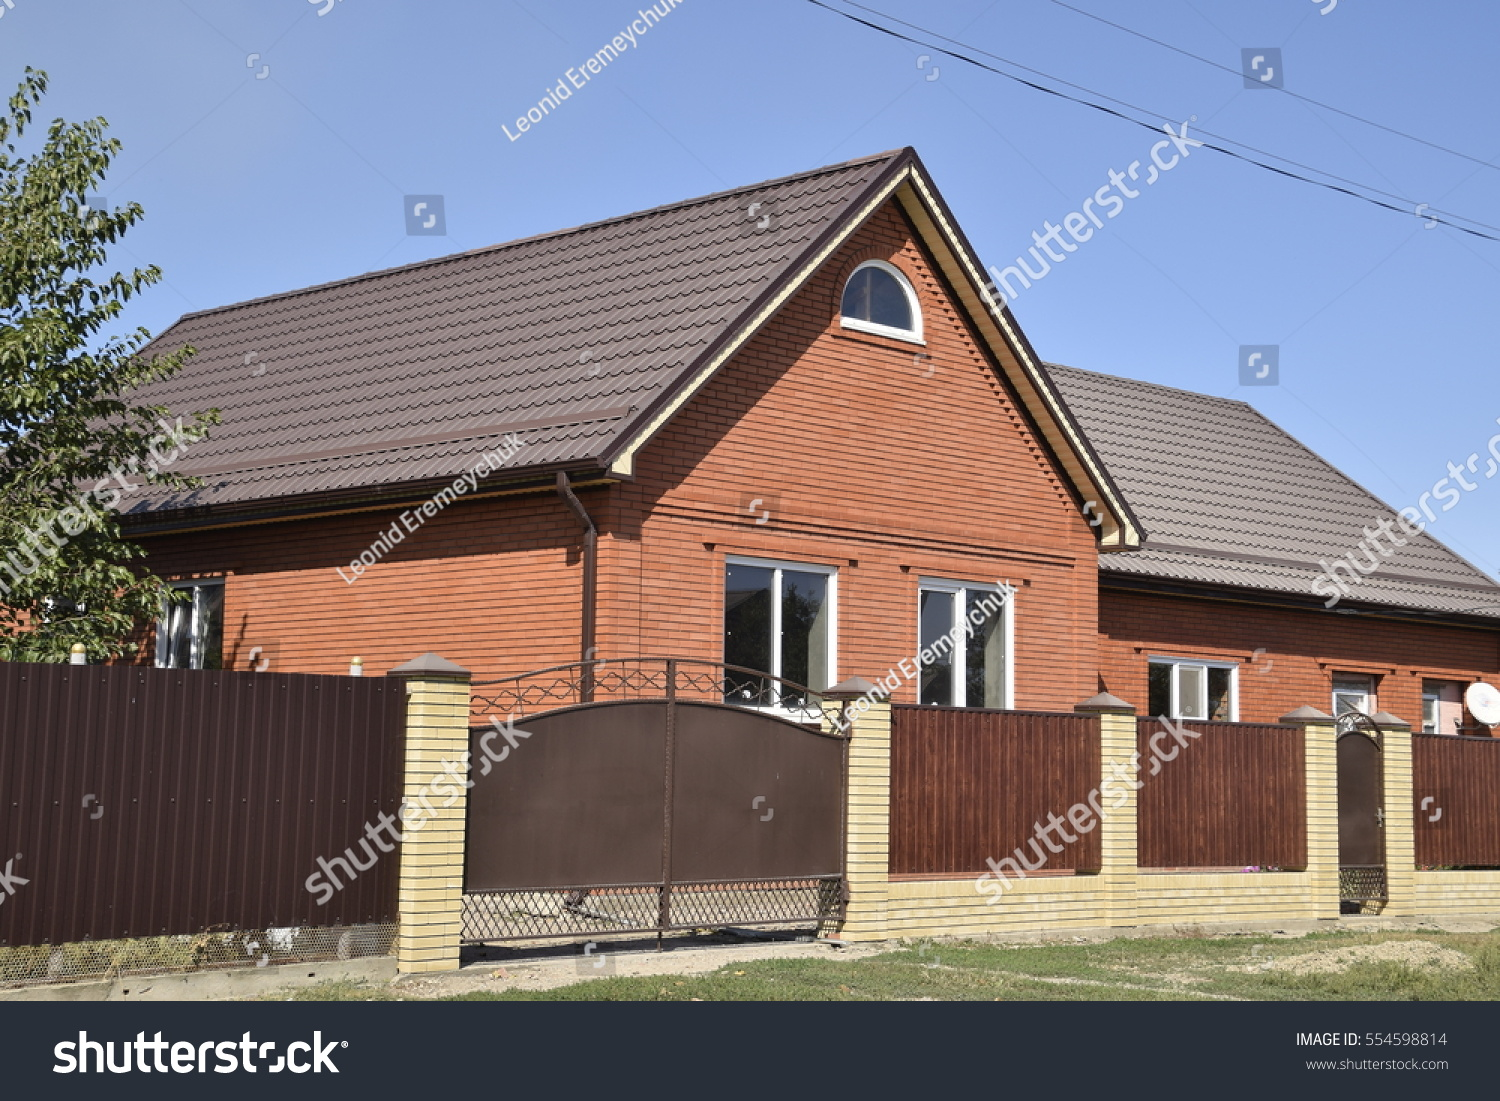 Detached house roof made steel sheets stock photo for Modern roofing materials